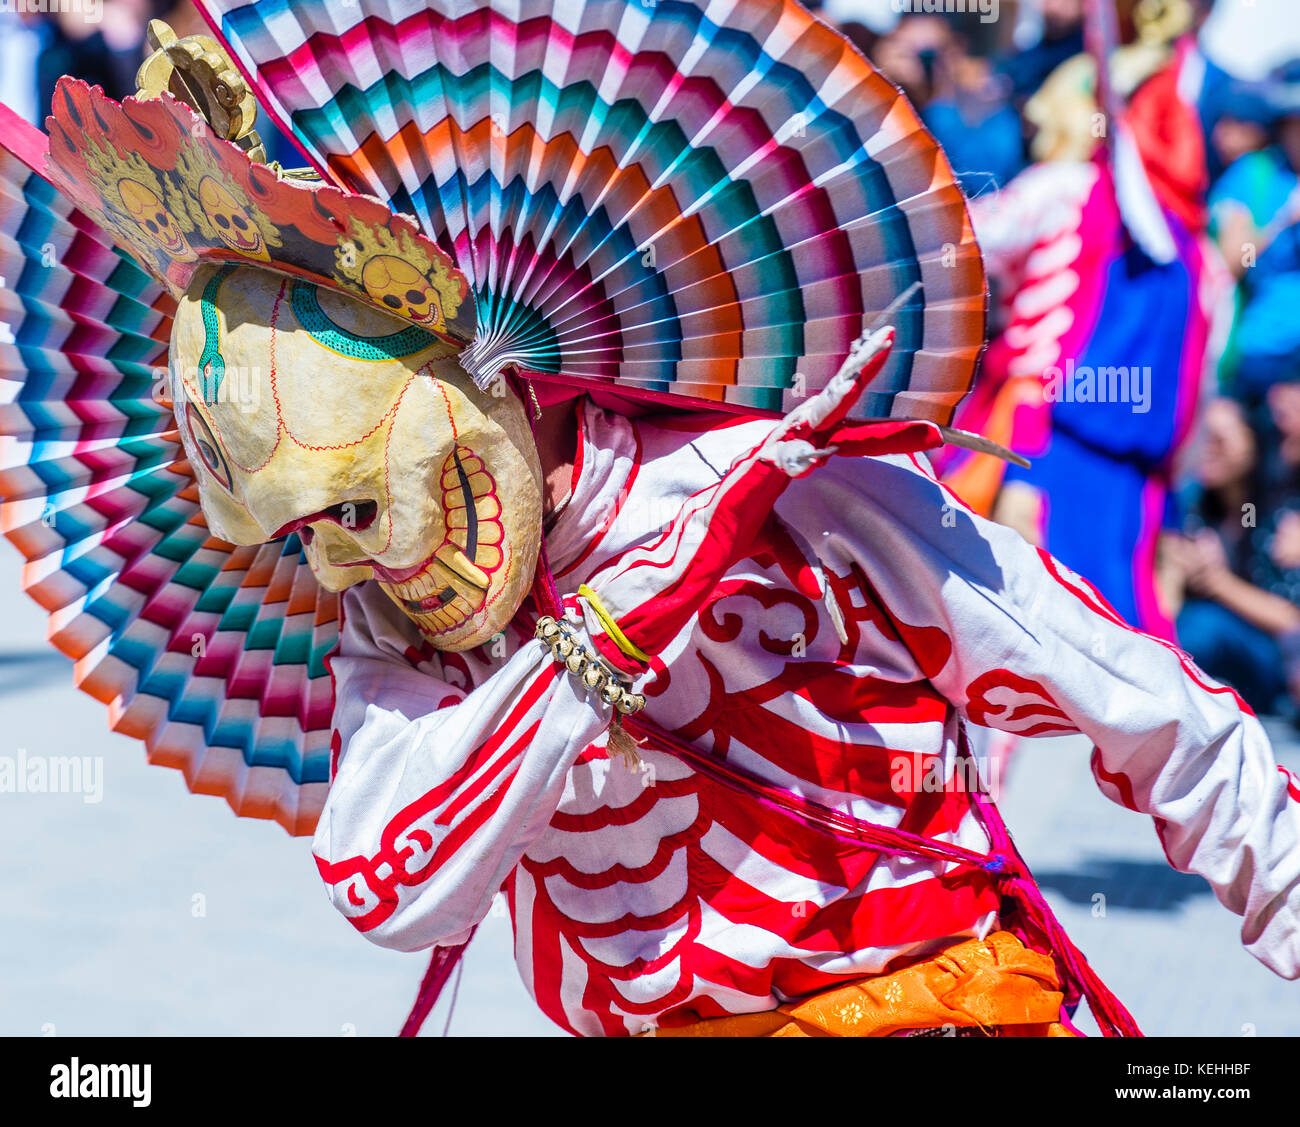 Buddhist monk performing Cham dance during the Ladakh Festival in Leh India - Stock Image